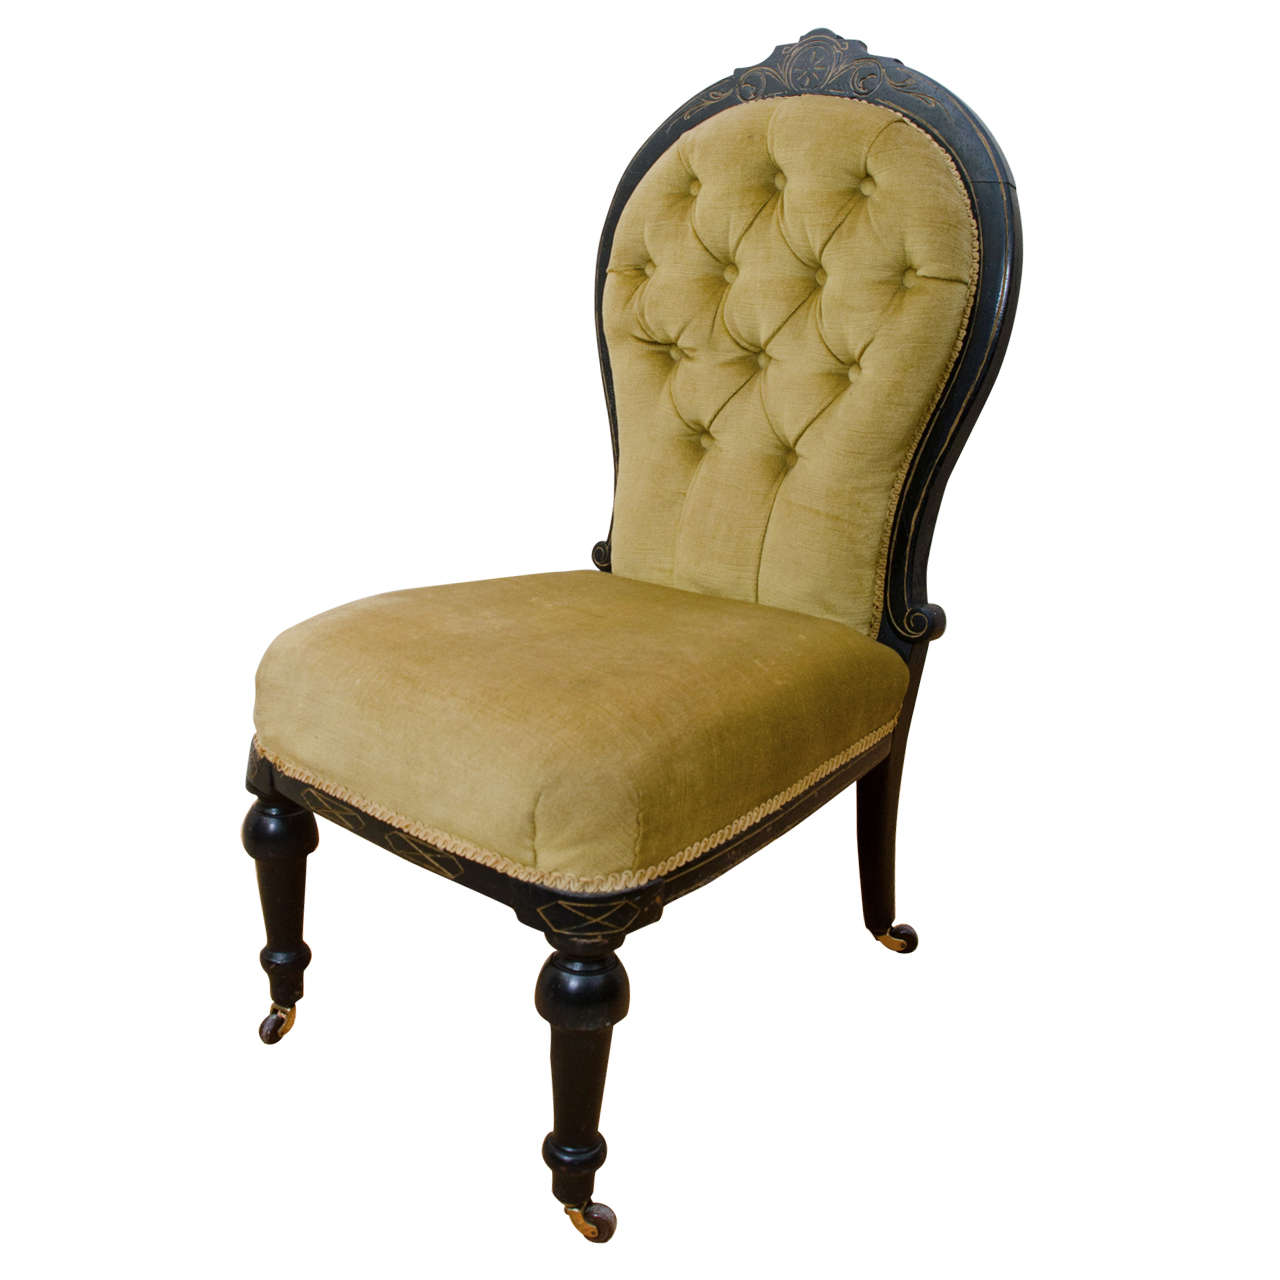 English Victorian Ebonized Tufted Back Slipper Chair